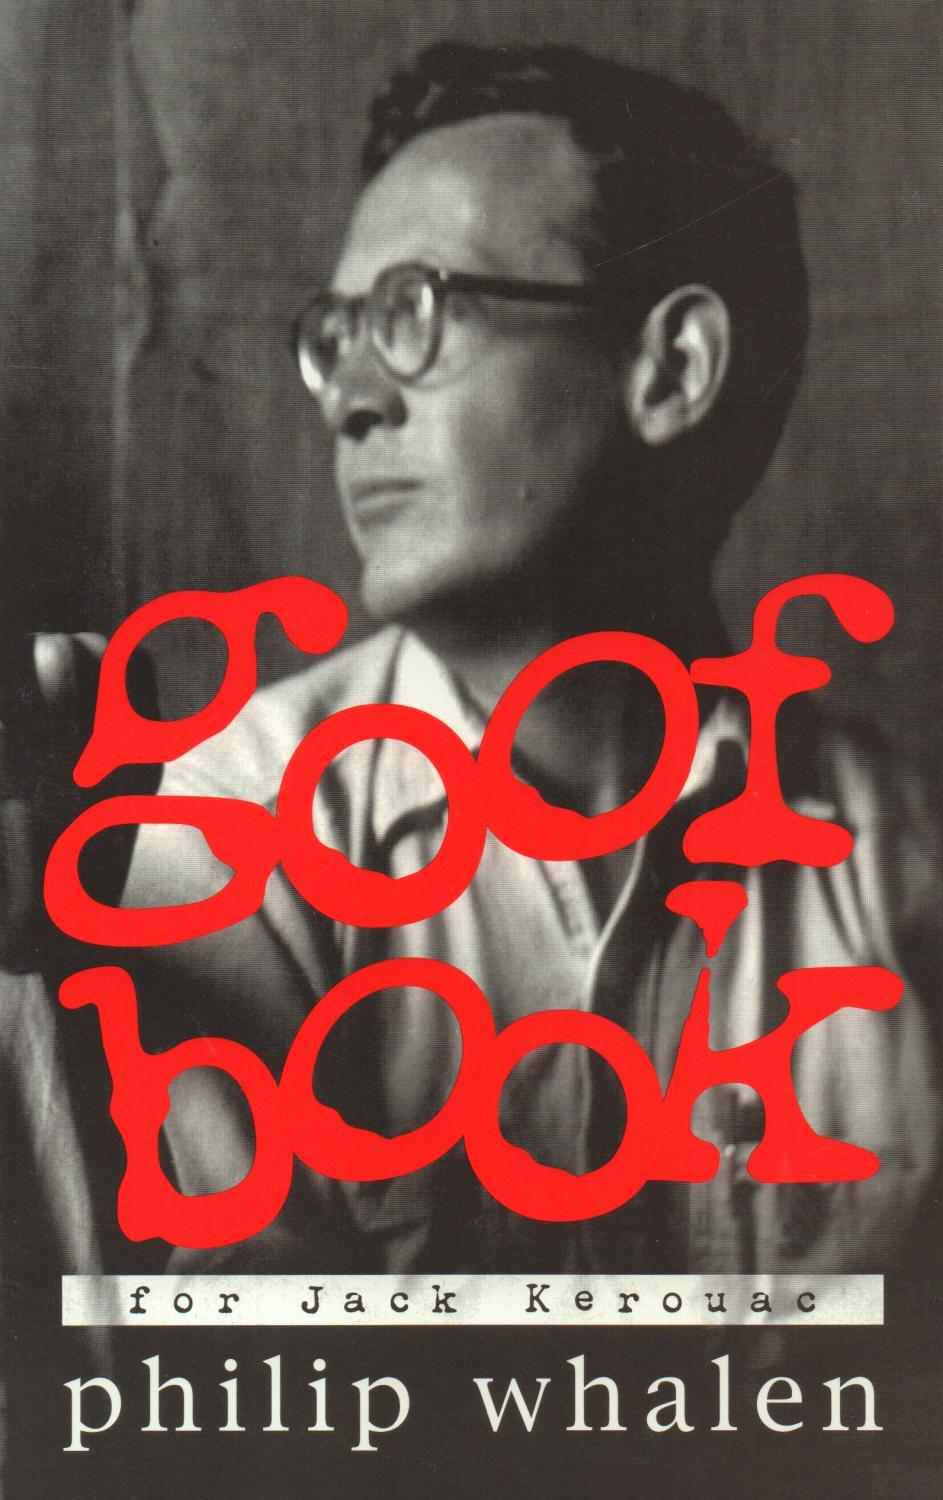 Goof Book Whalen, Philip Fine Softcover Pictorial wrapper with red text and black-and-white photographs of Jack Kerouac and author Philip Whalen. Wrapper is clean and unworn. Text block is c